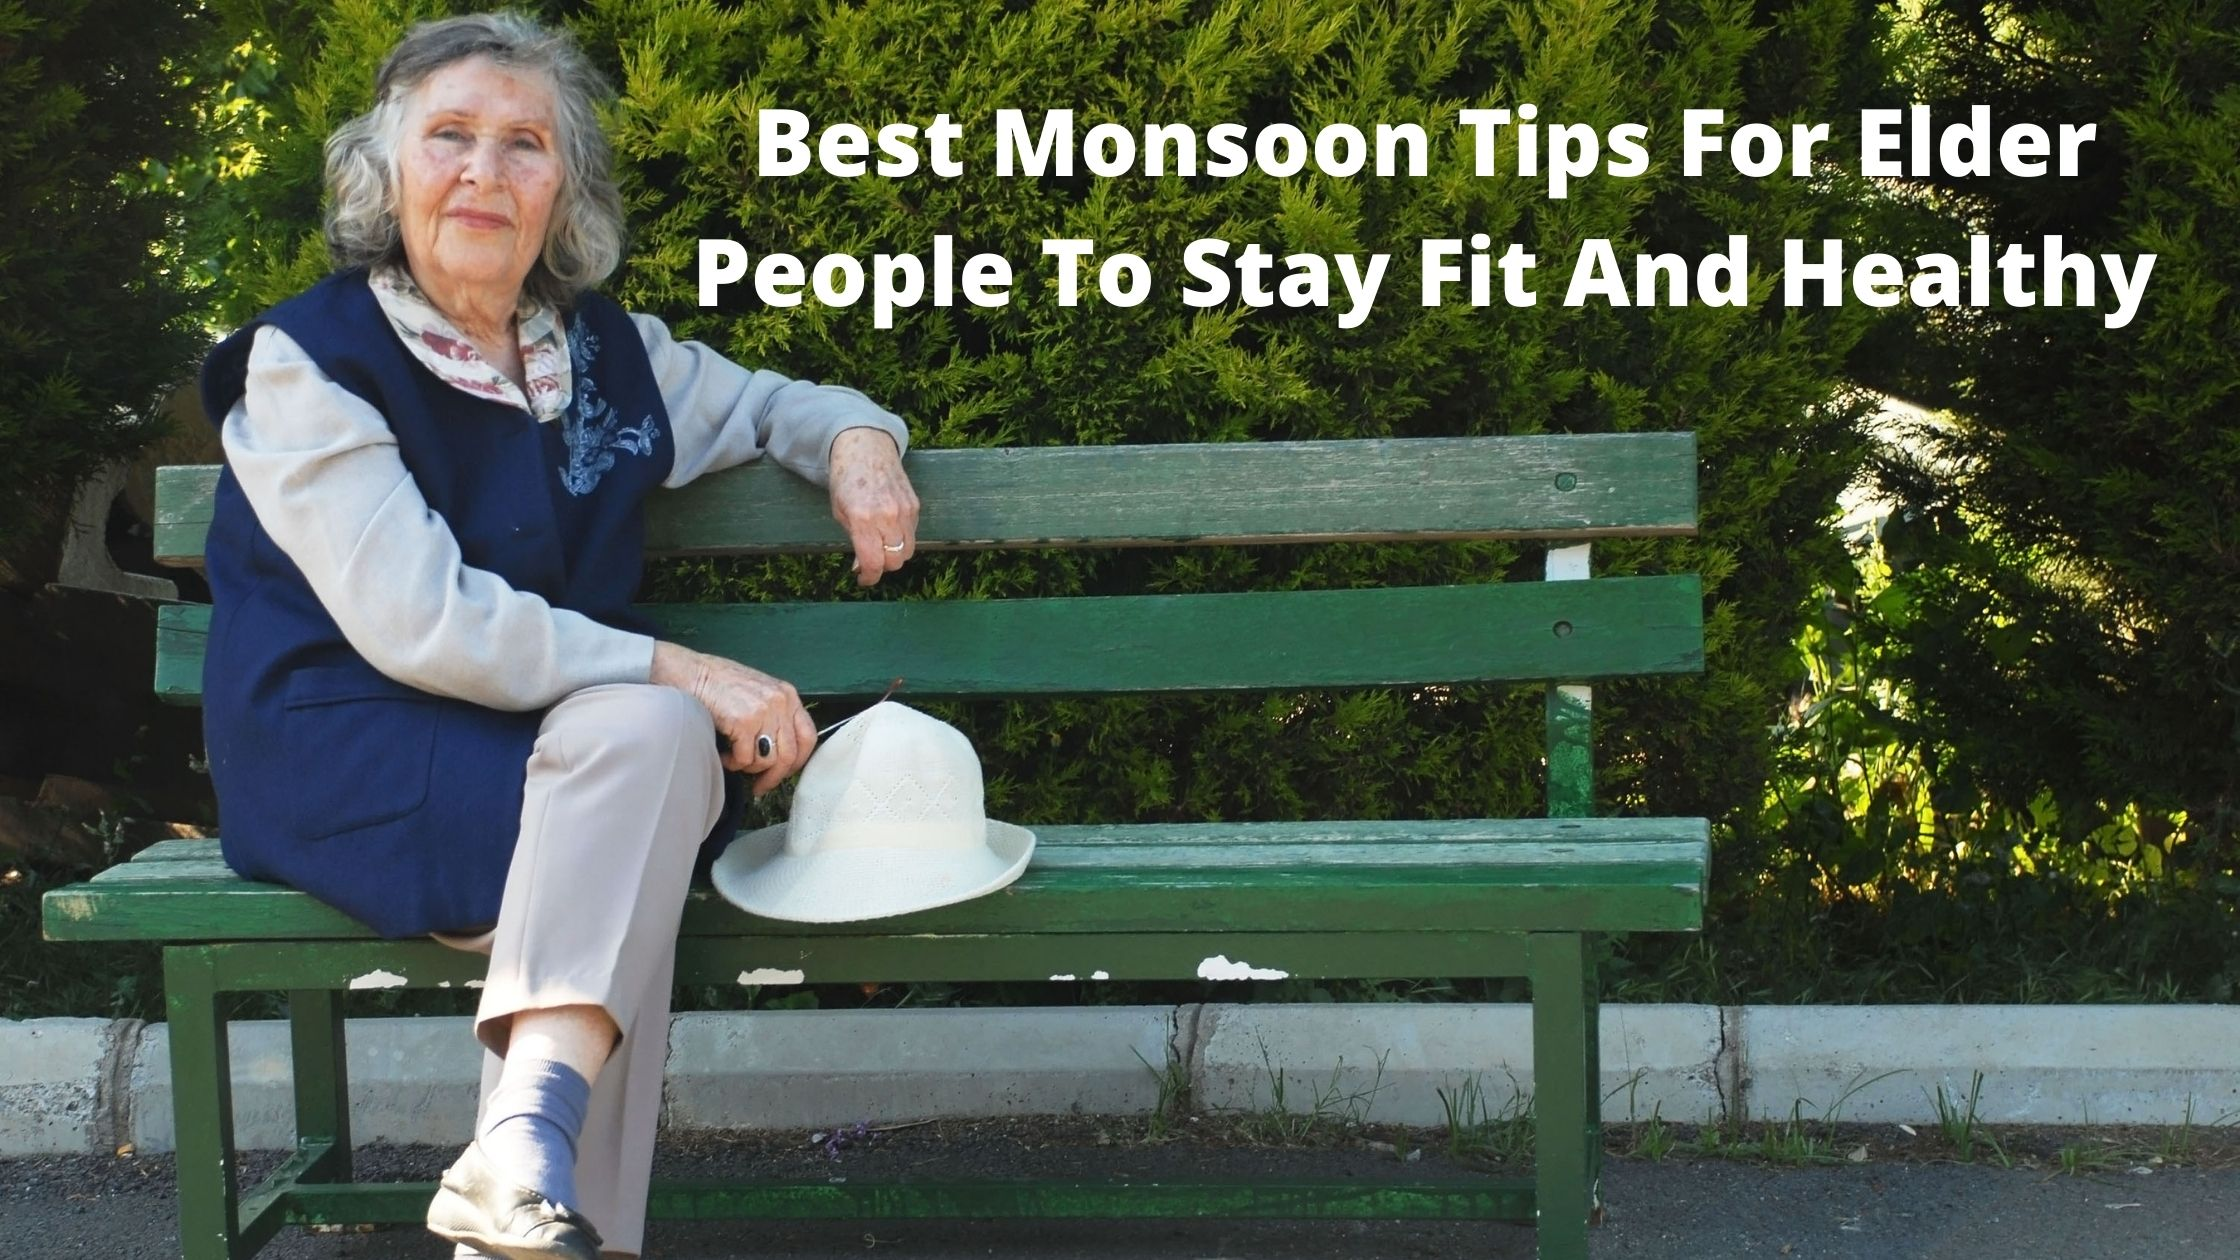 Best Monsoon Tips For Elder People To Stay Fit And Healthy